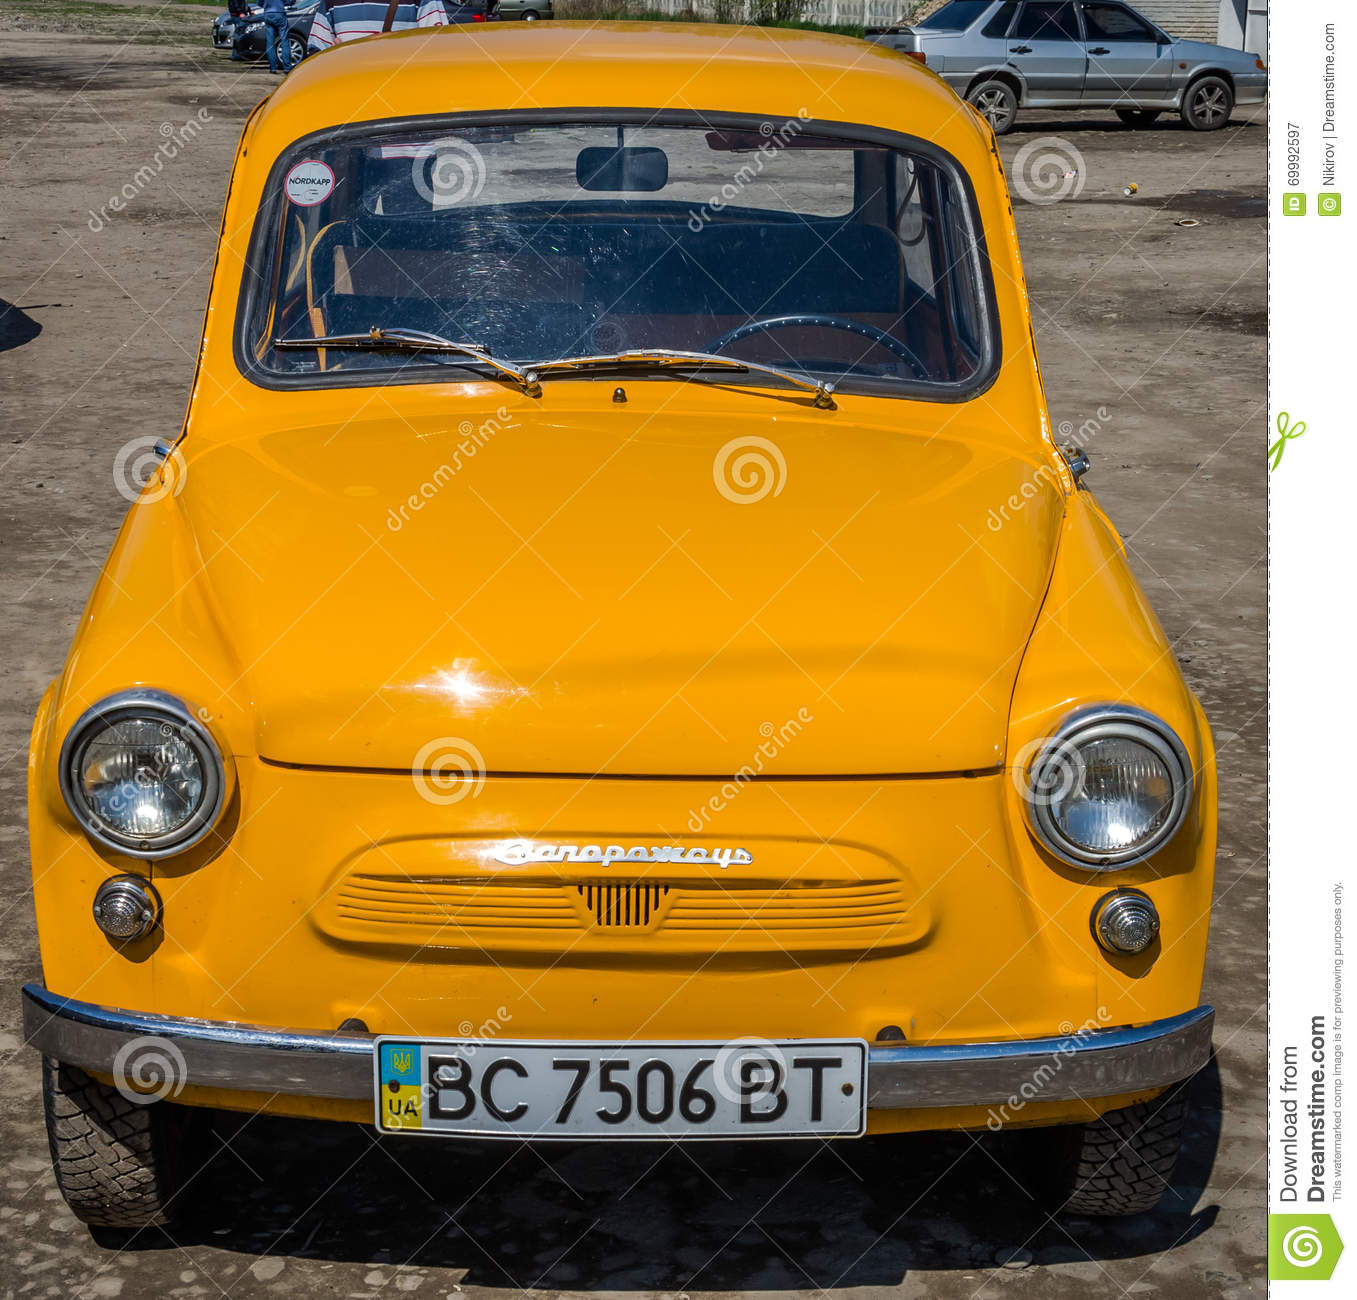 APRIL, 2016: Old Vintage Small Car Brand